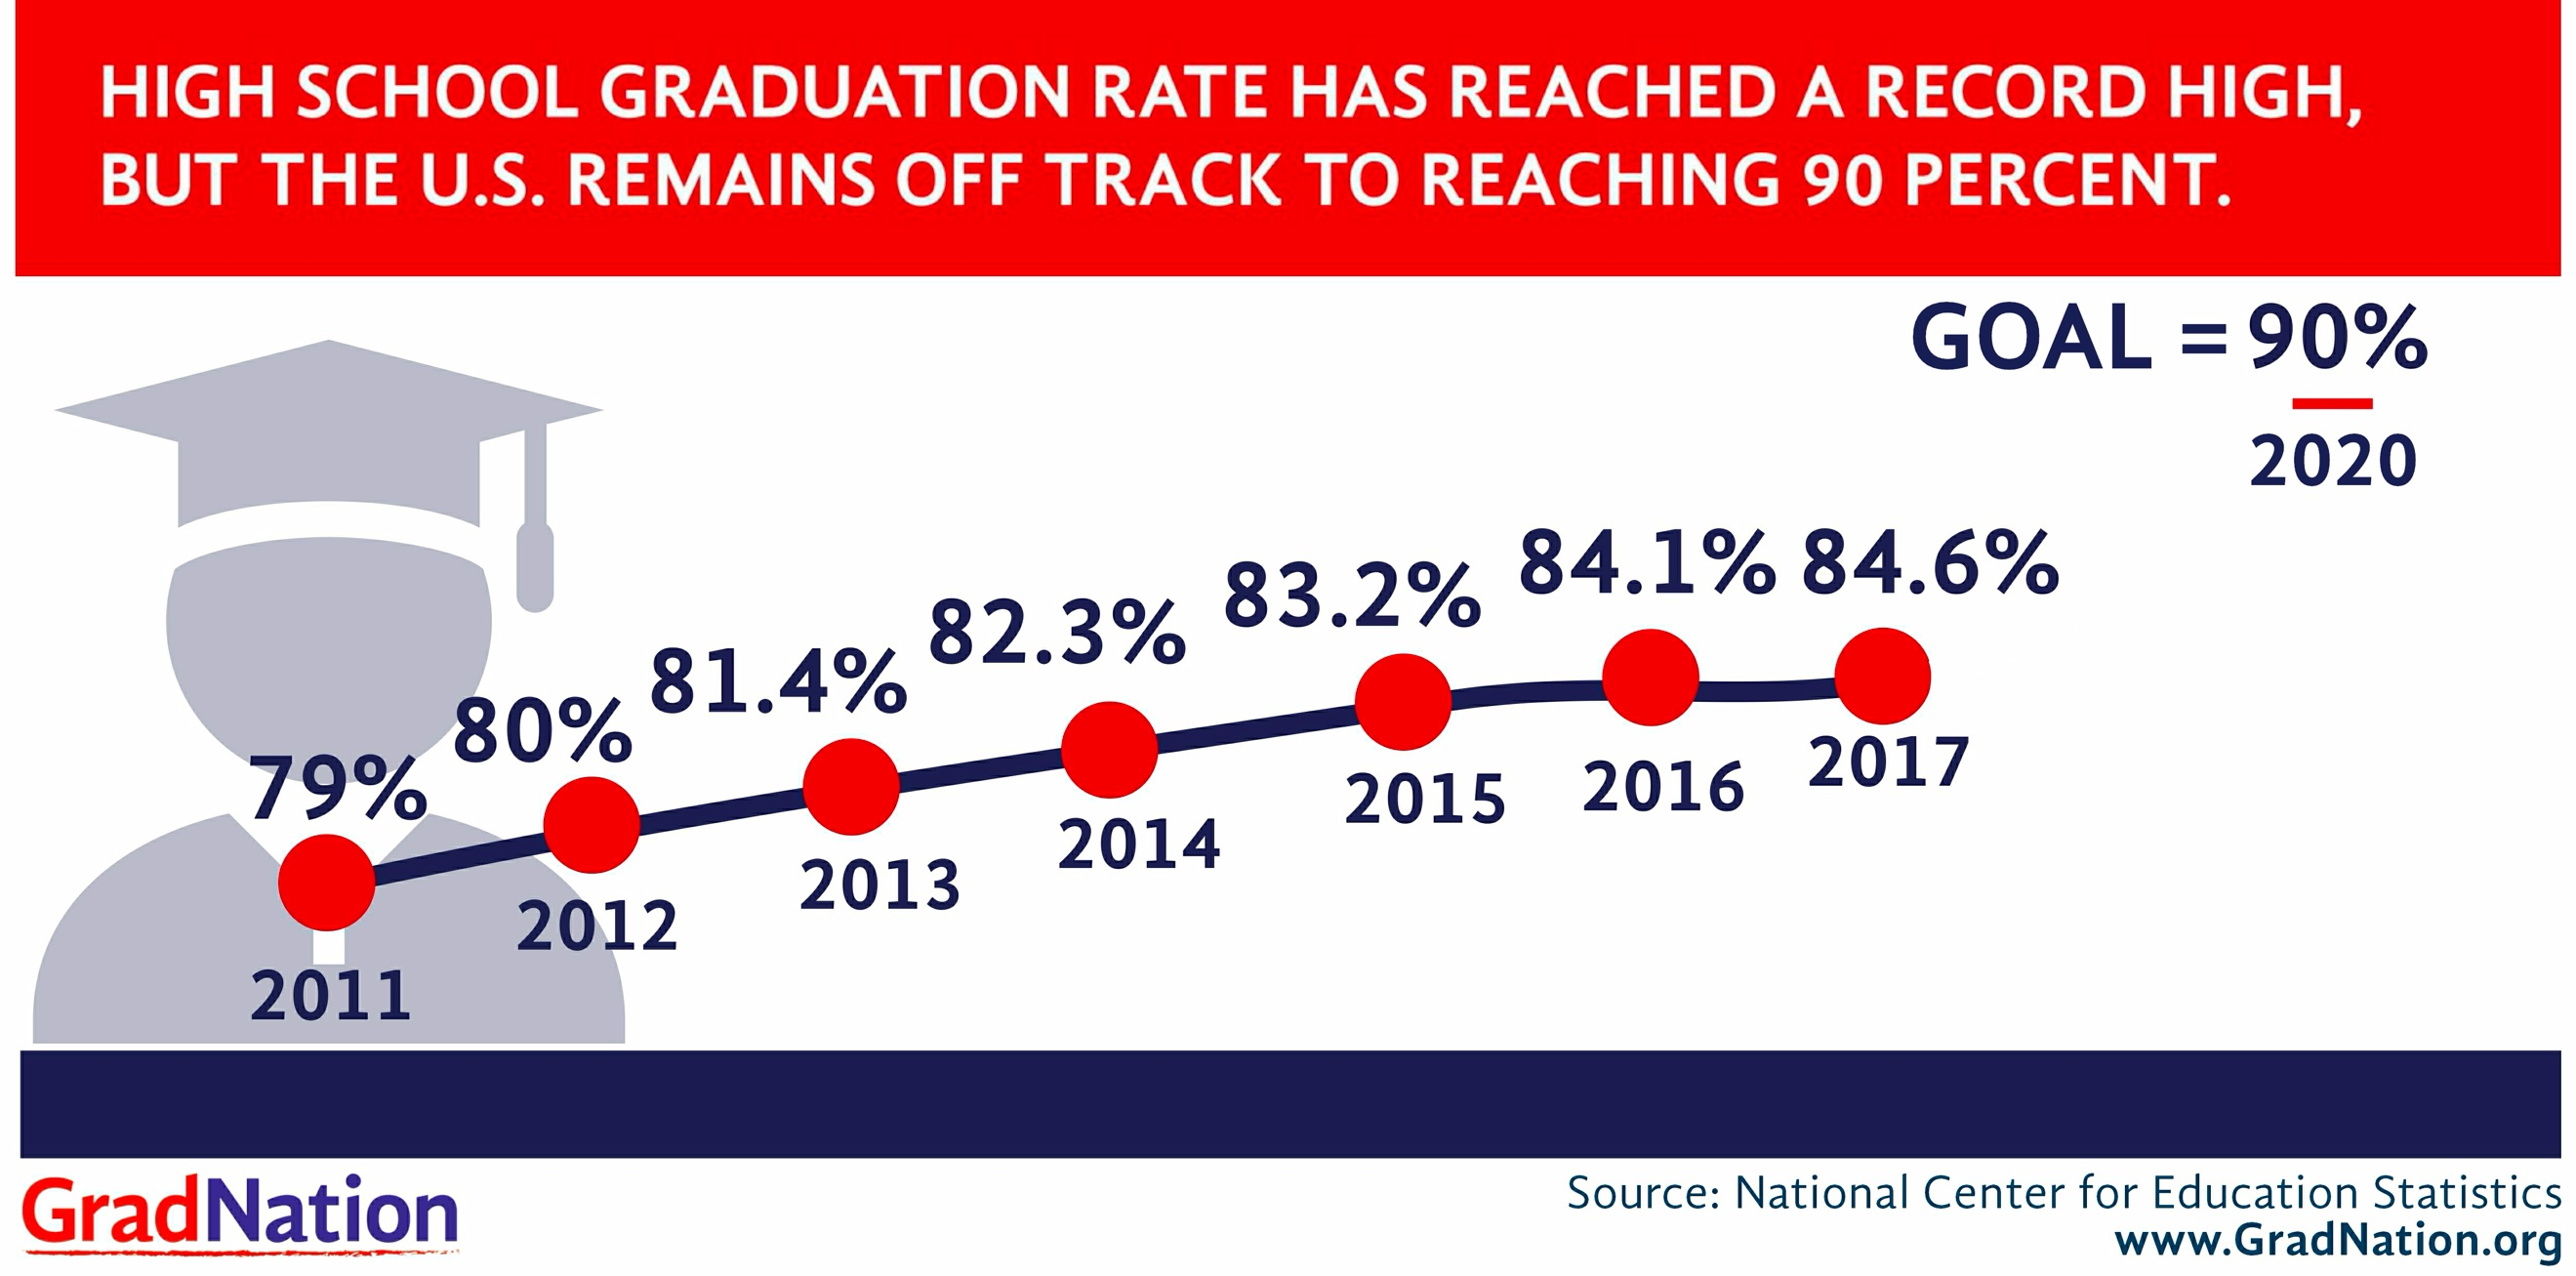 Chart showing how high school graduation rate has reached a record high, but the U.S. remains off track to reaching 90 percent.